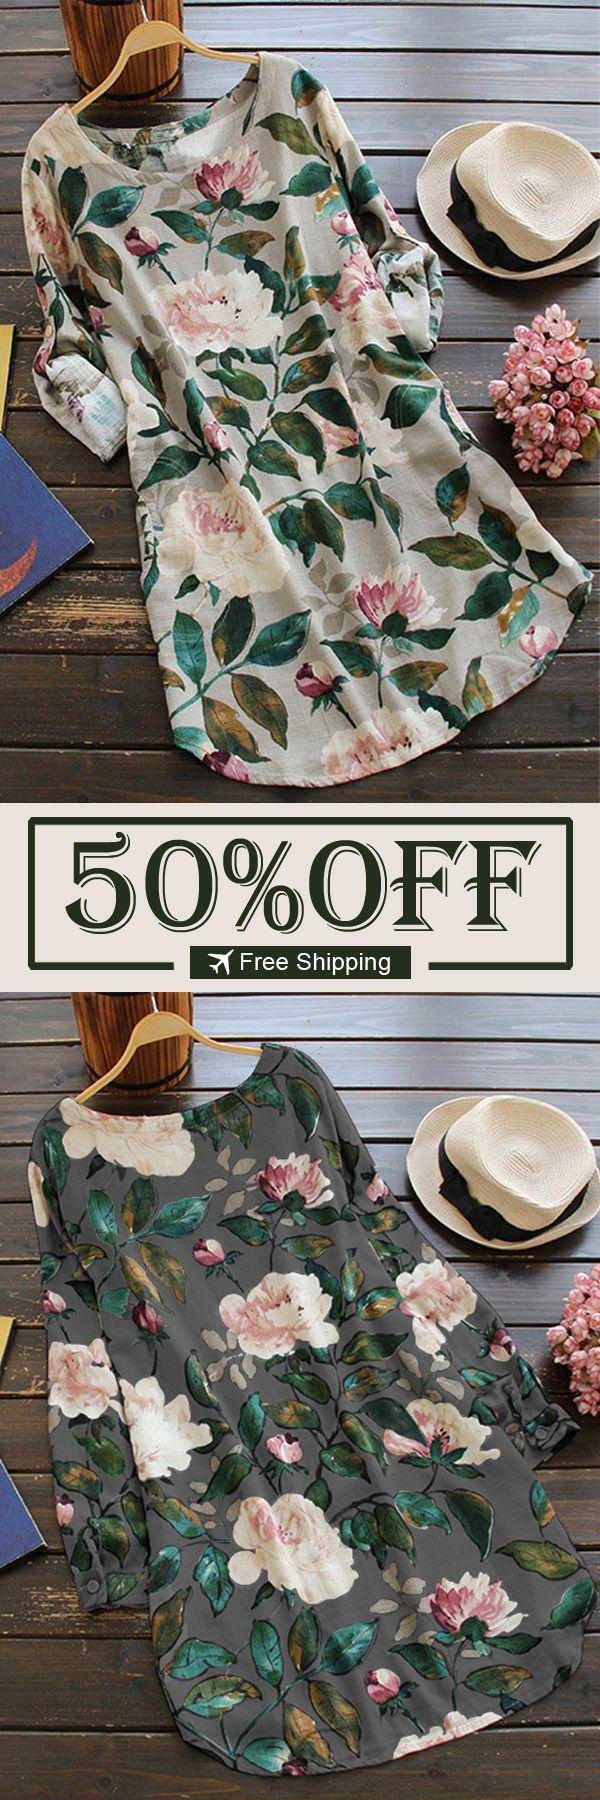 50%OFF&Free shipping. Shop in banggood.com now! #stitchfix